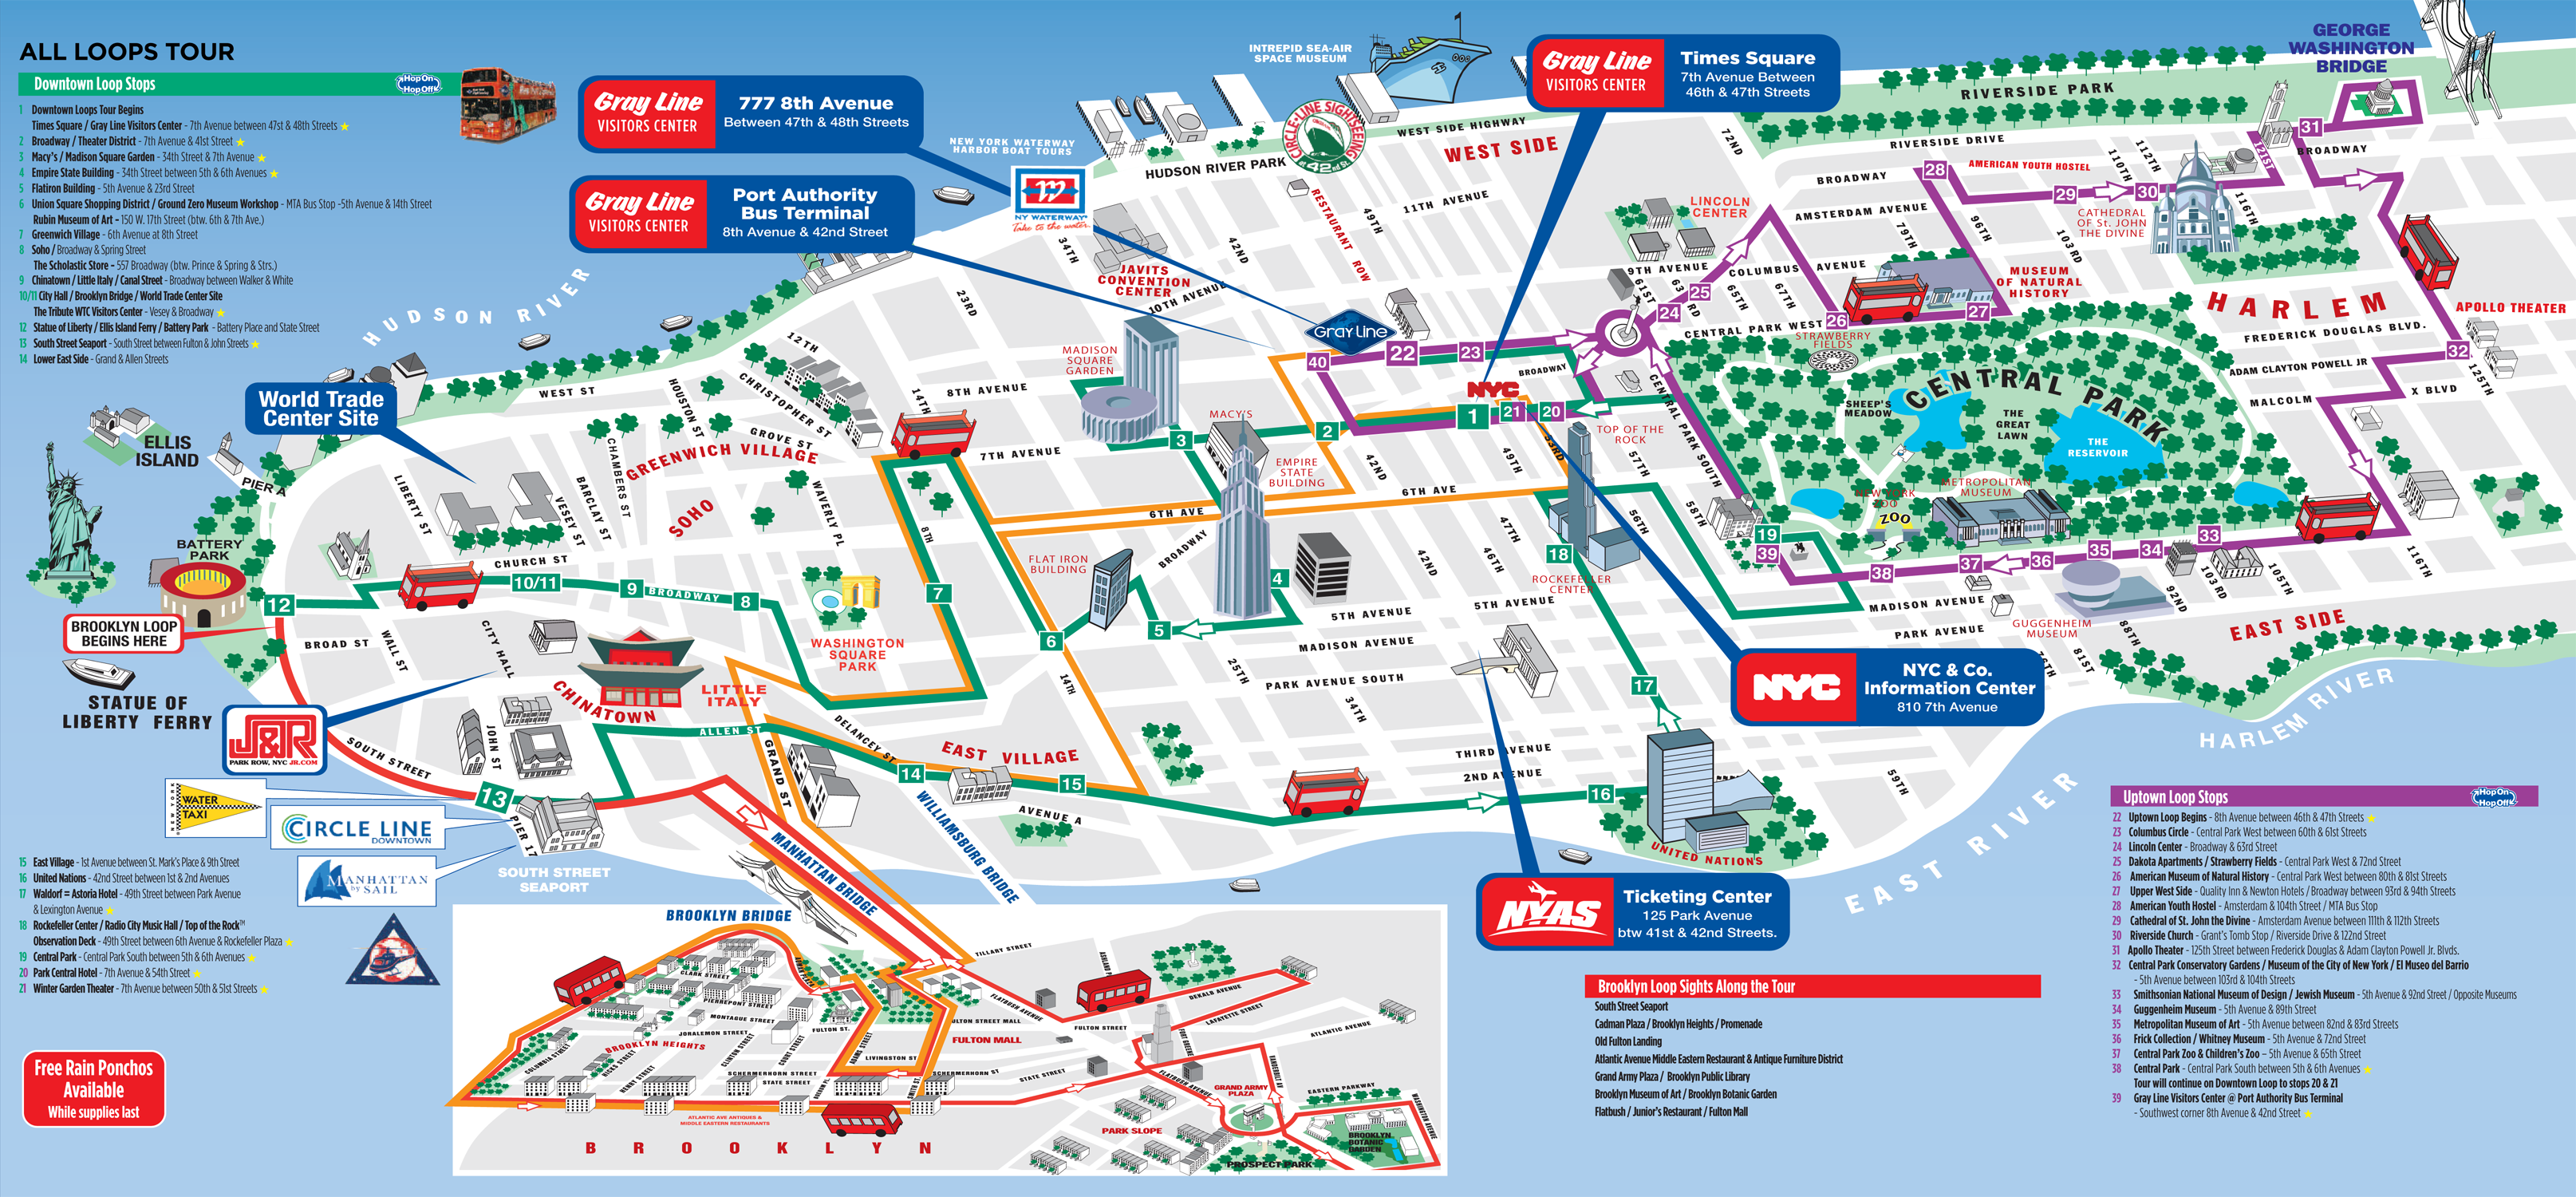 Maps update 30001102 tourist map of new york city map for Attractions new york city